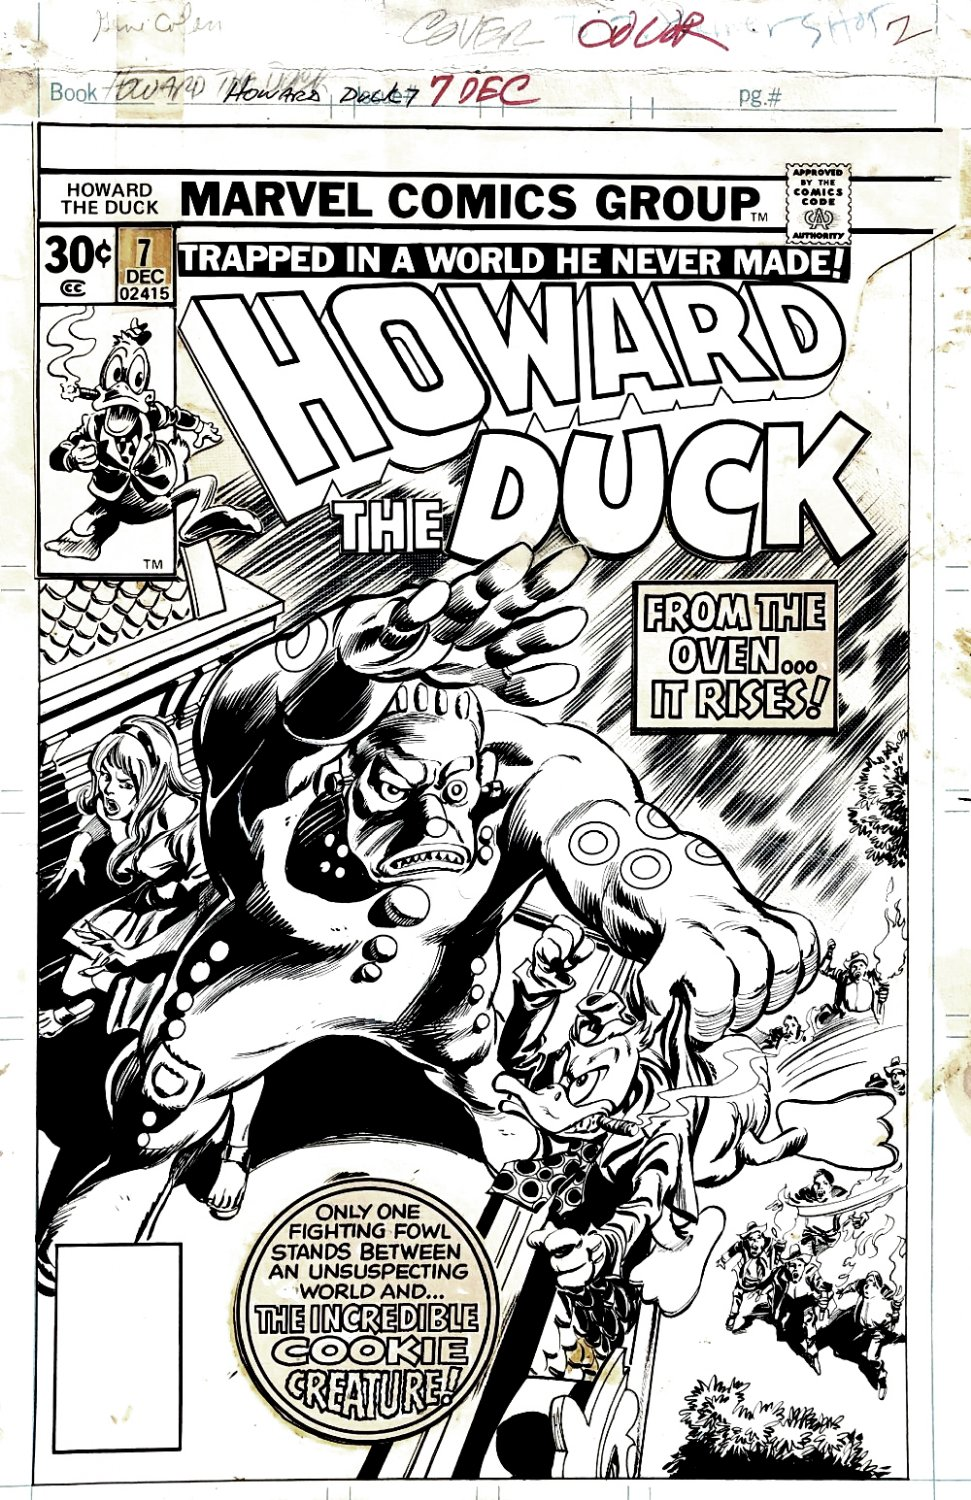 Howard the Duck #7 Cover (HOWARD, BEVERLY, COOKIE MONSTER!) 1976